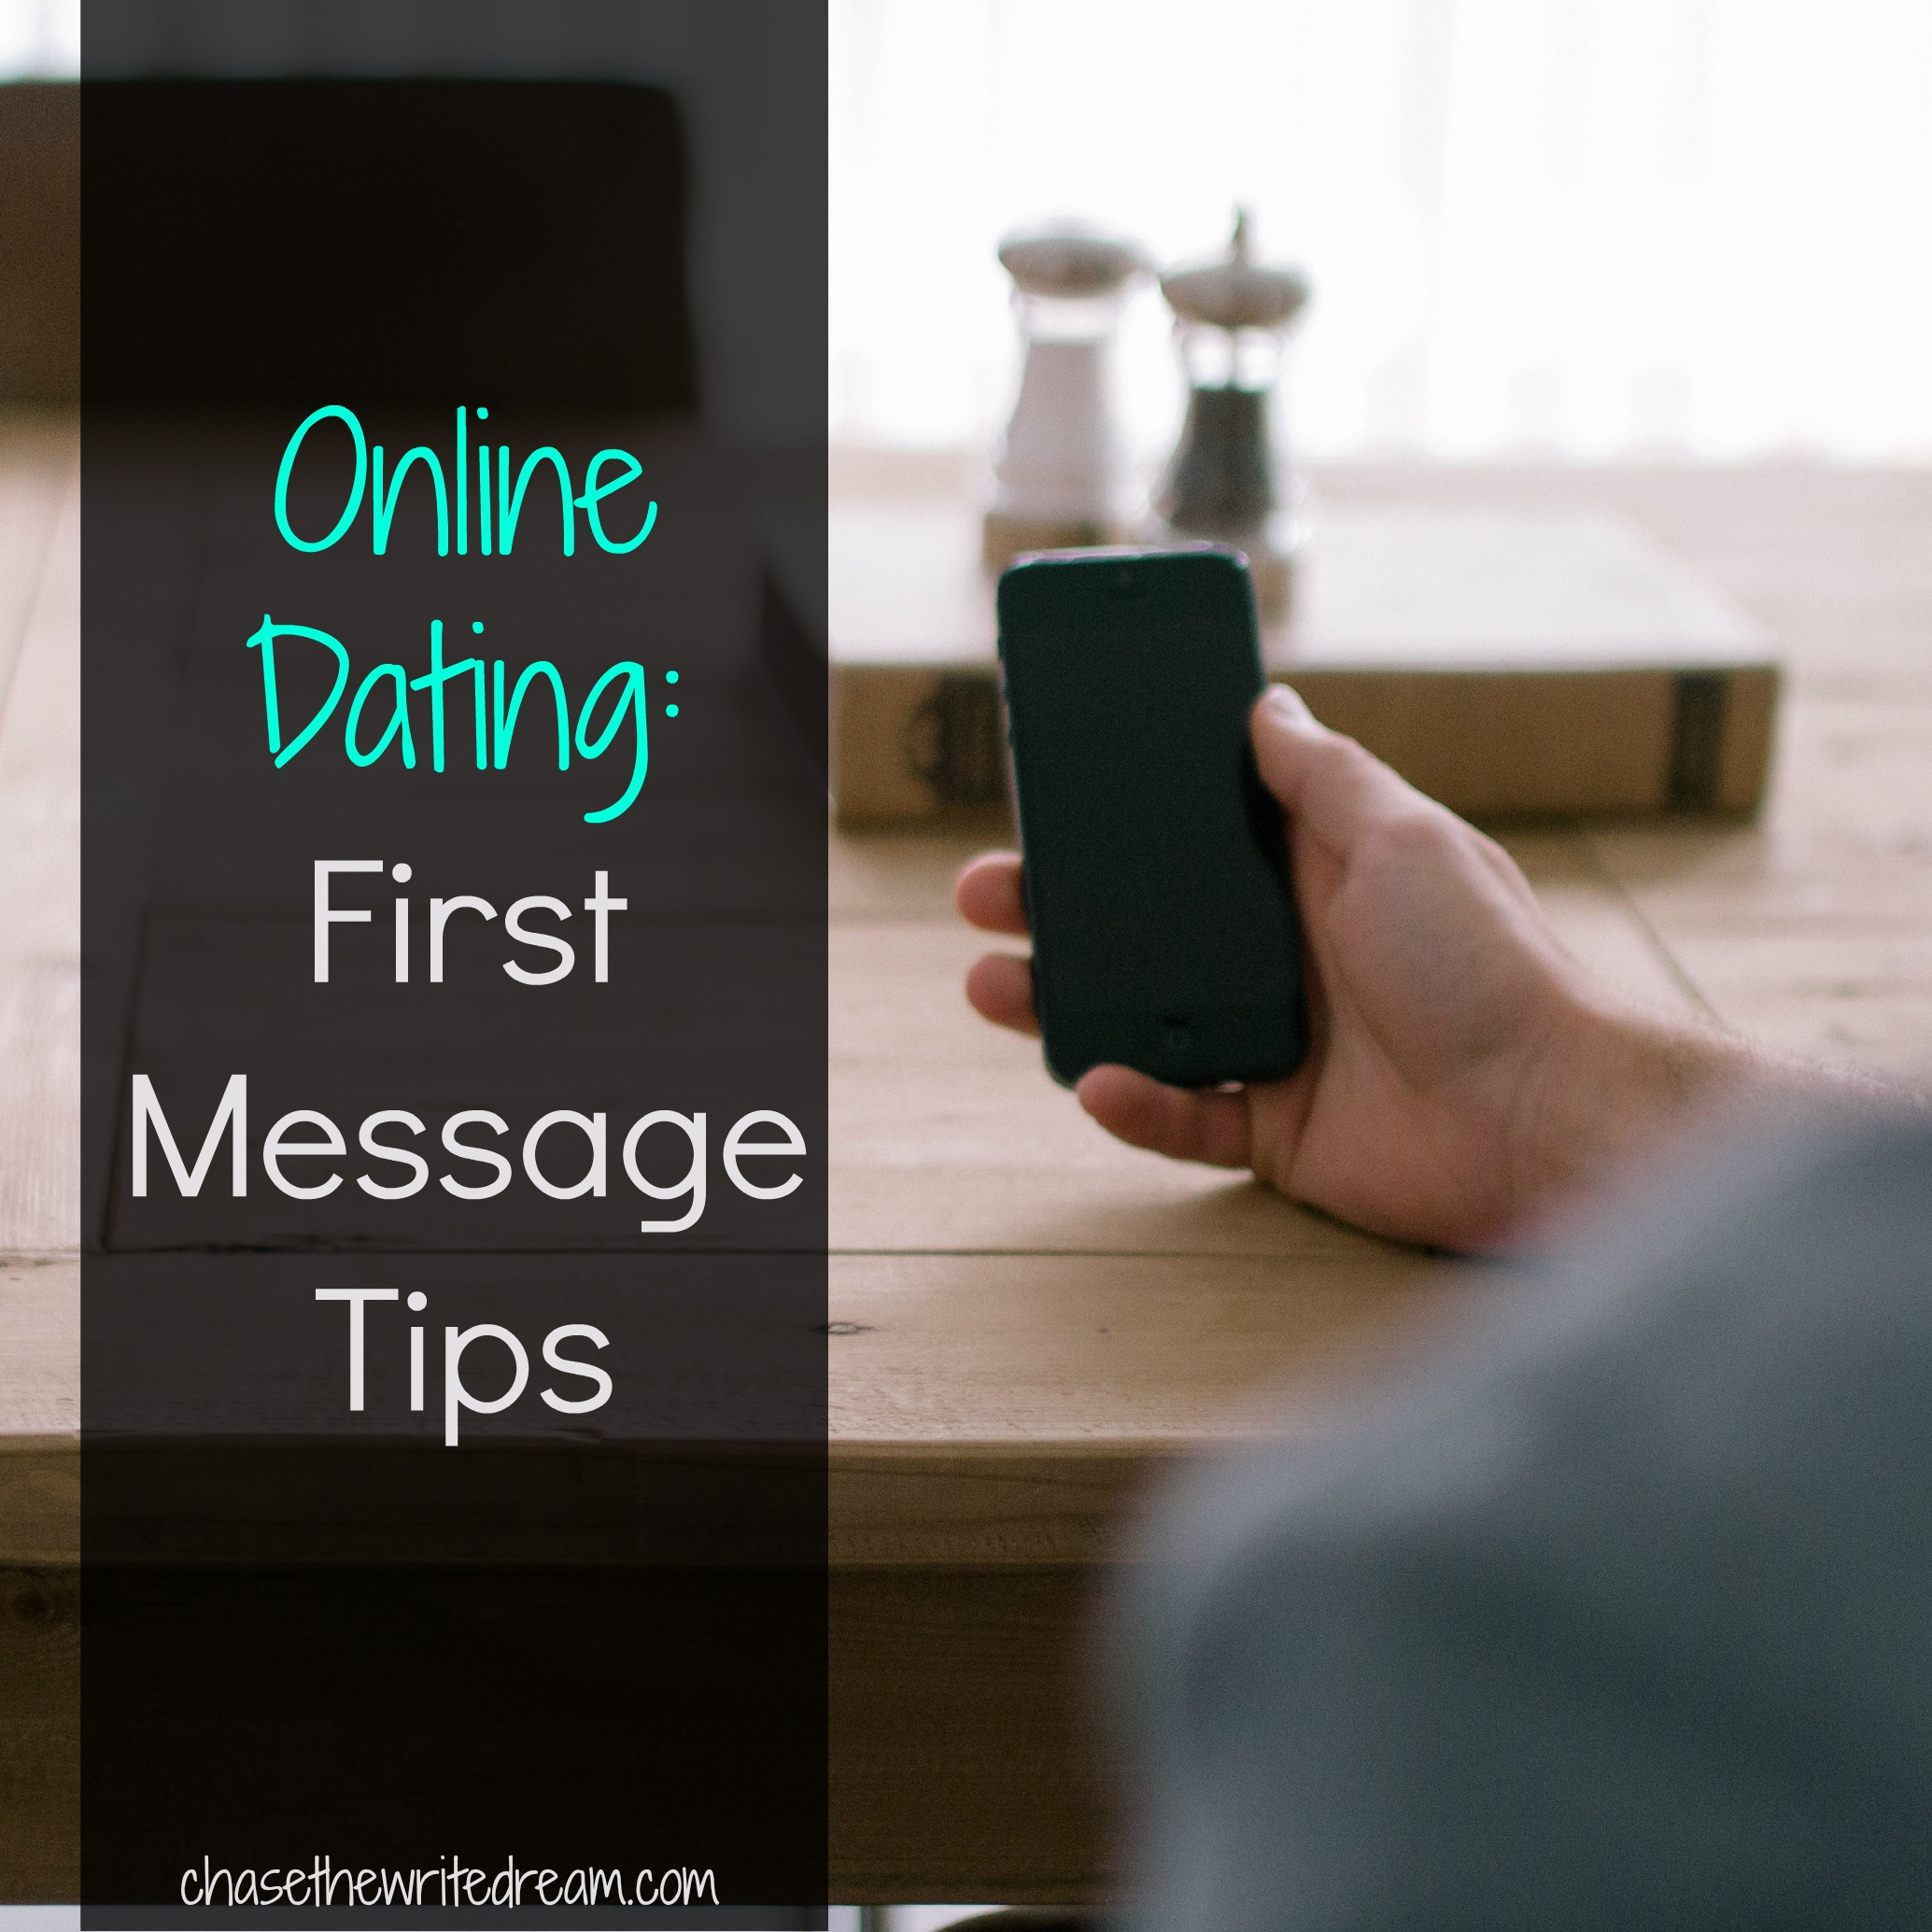 Tips & Advice for Internet Dating